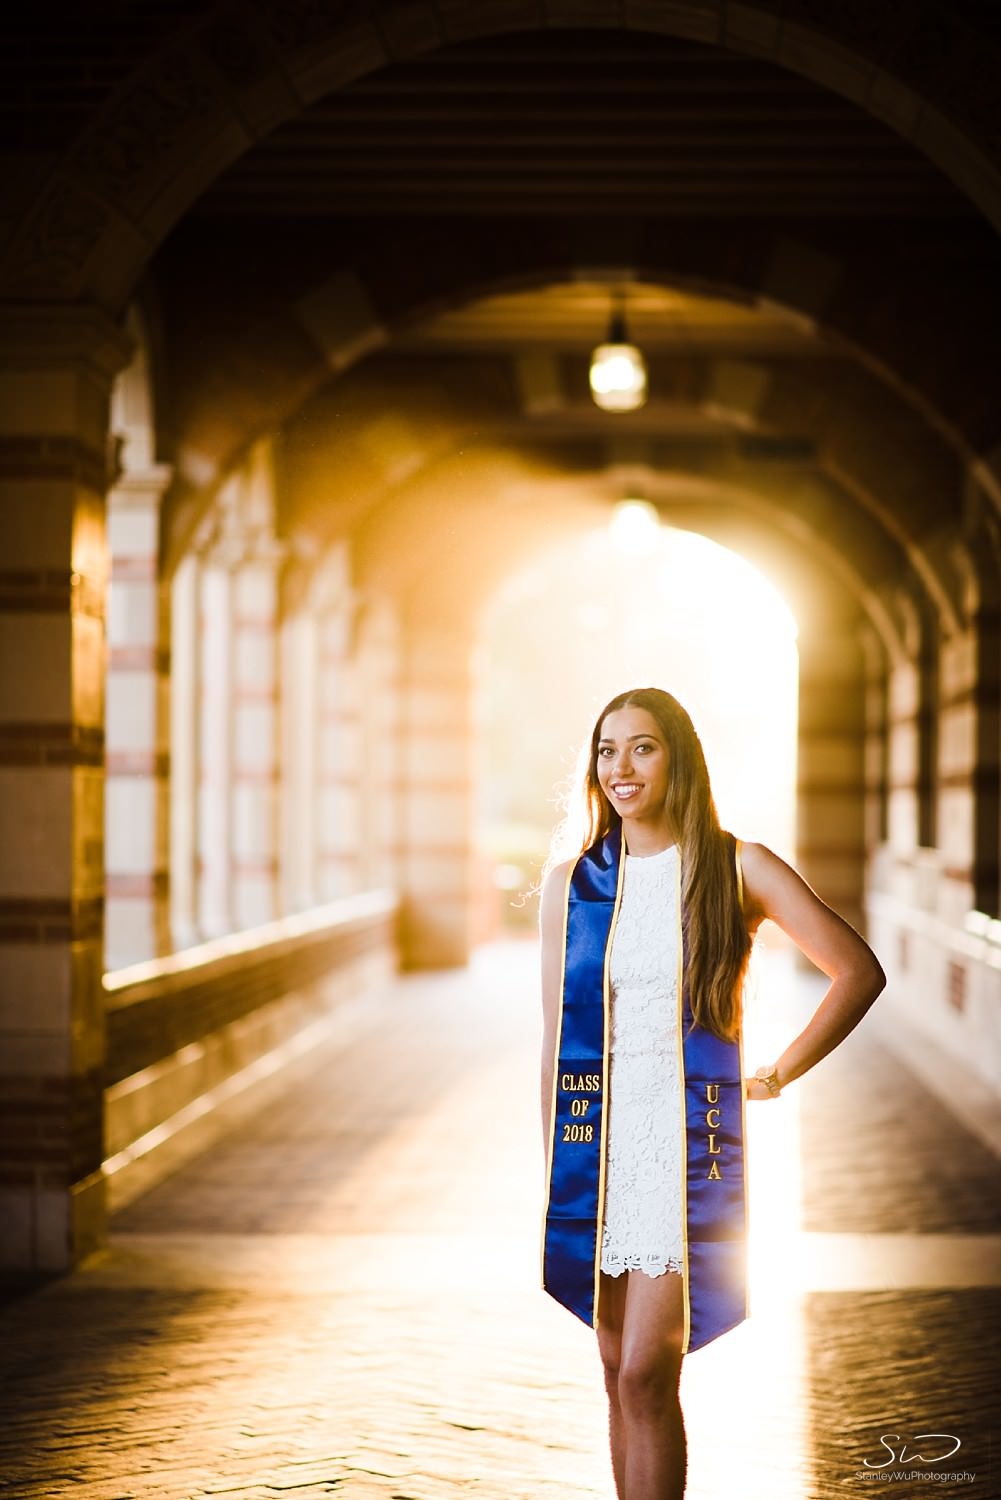 los-angeles-ucla-graduation-senior-portraits_0013.jpg